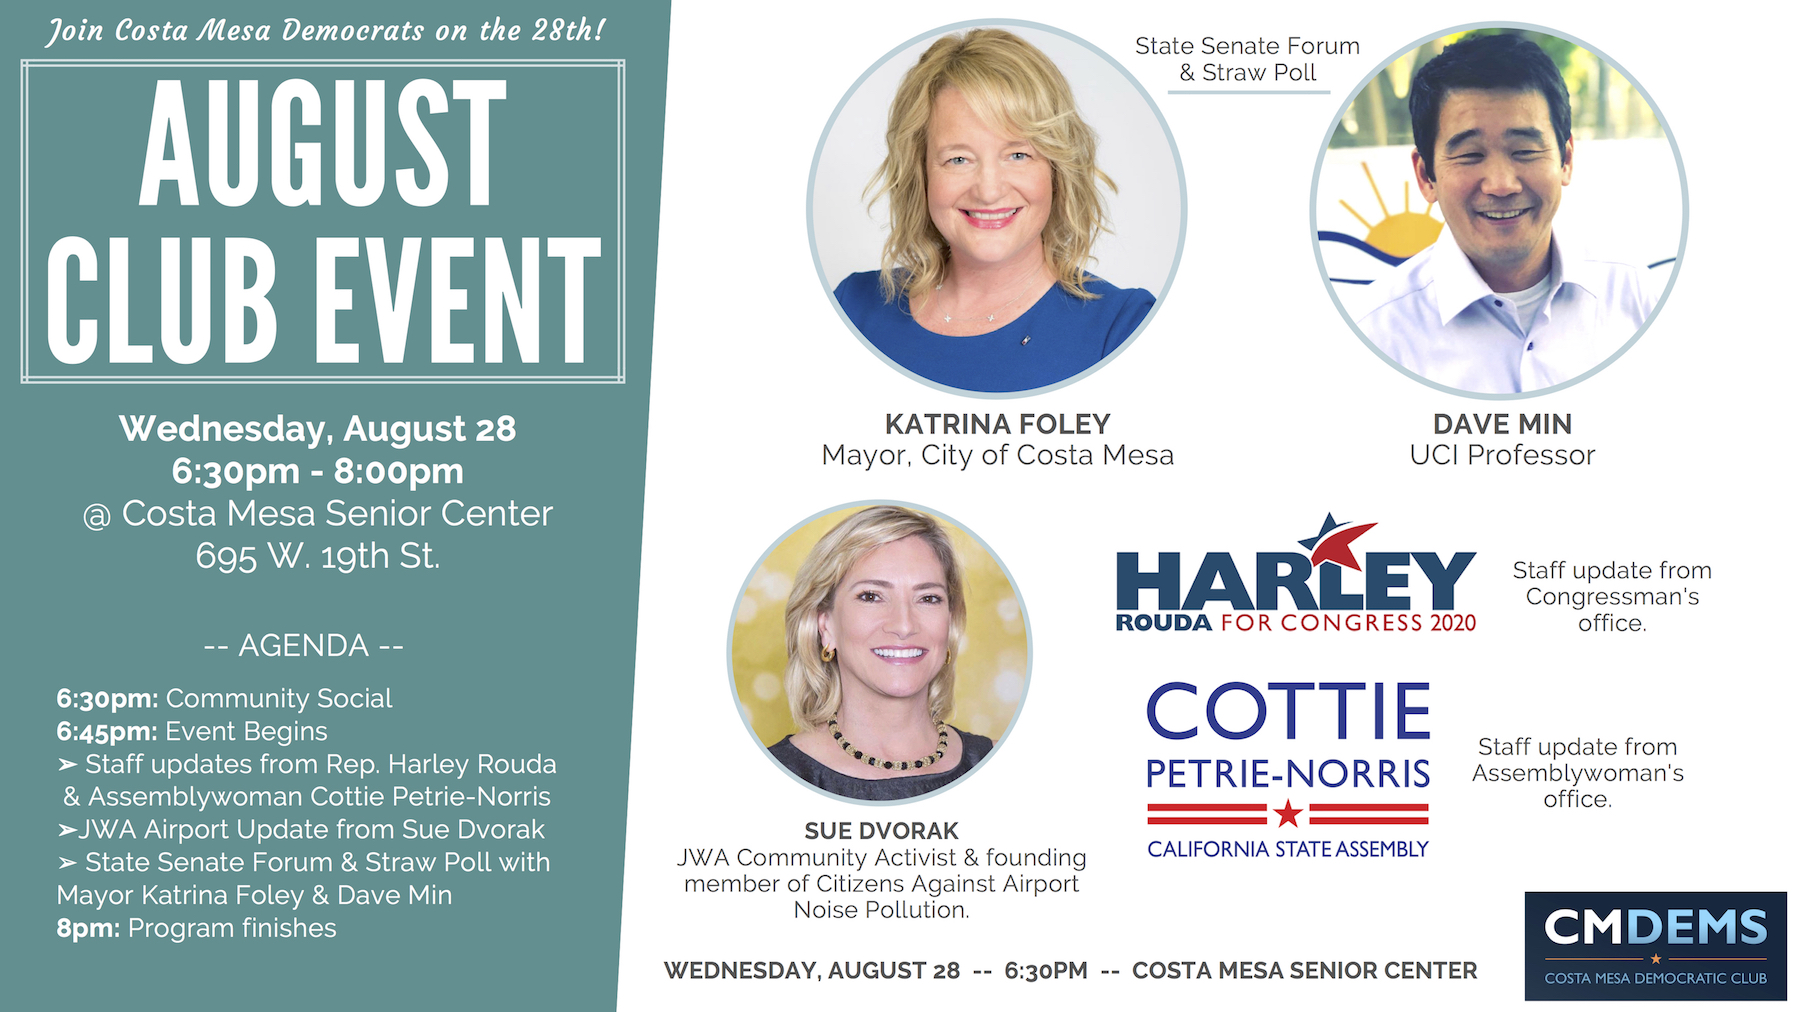 Costa Mesa Democratic Club August 28 2019 Event Cover Democratic Party Costa Mesa